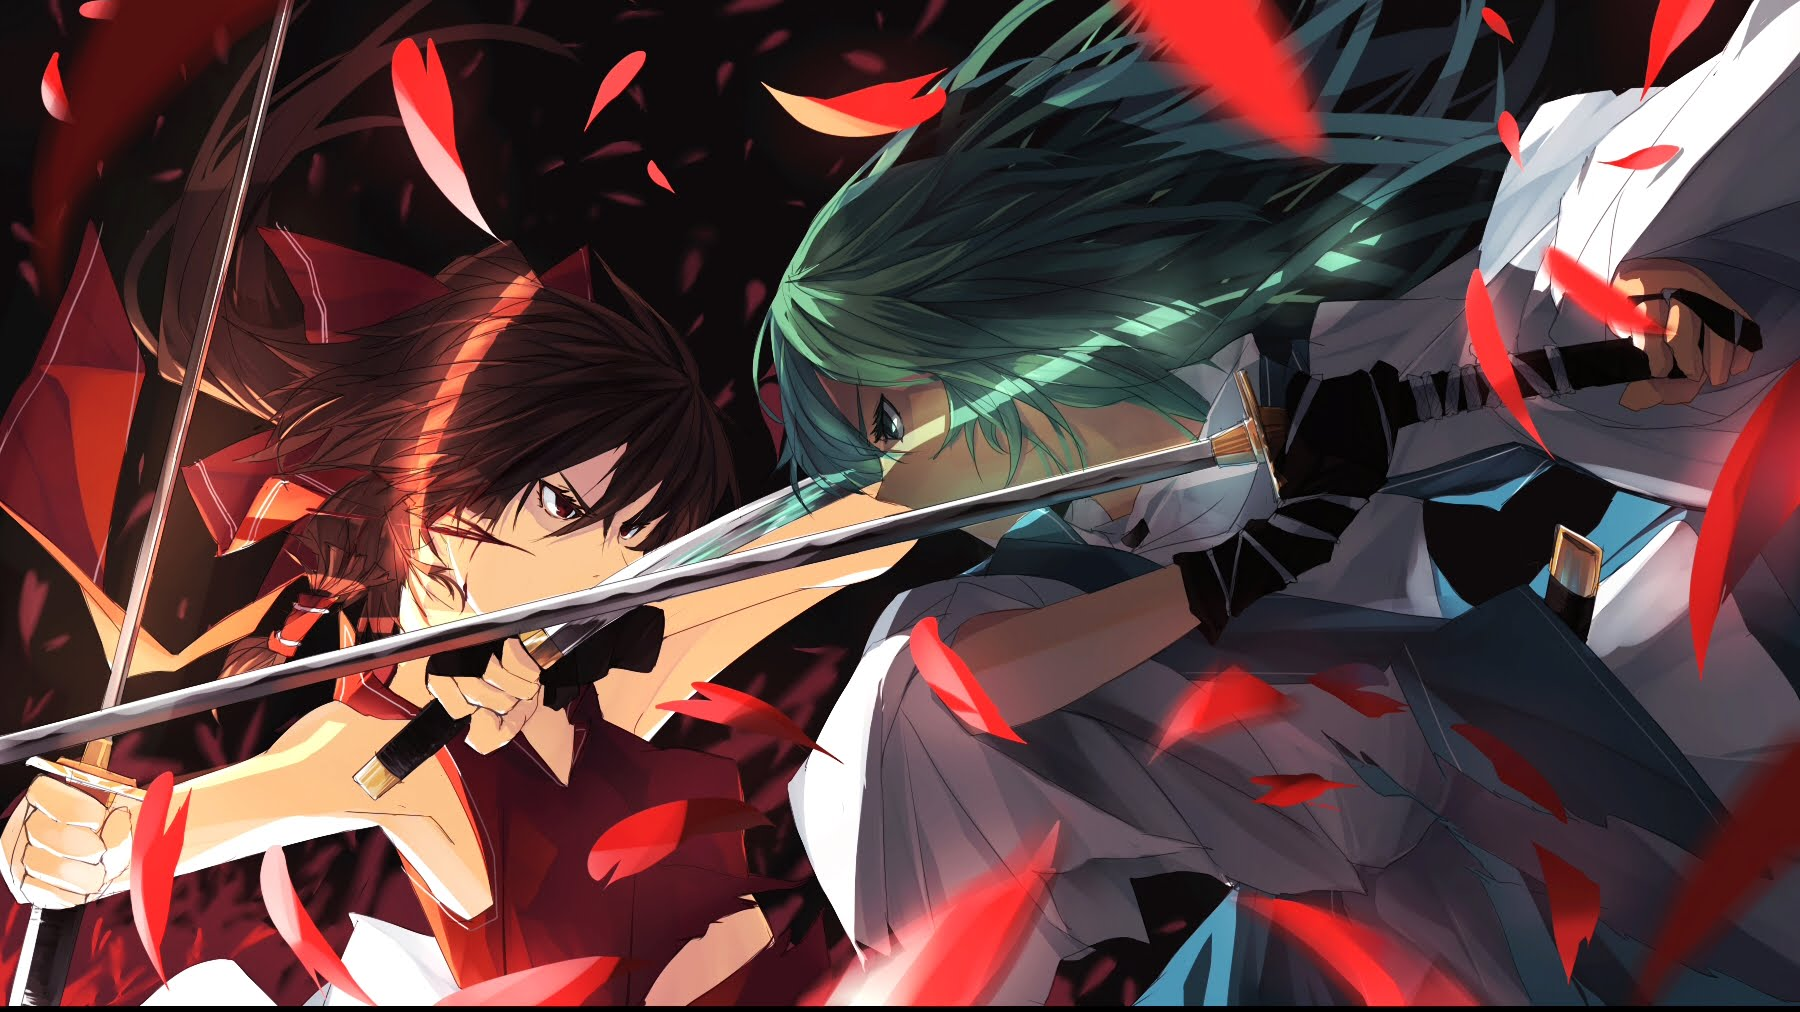 Epic Anime Battle Wallpapers On Wallpaperdog